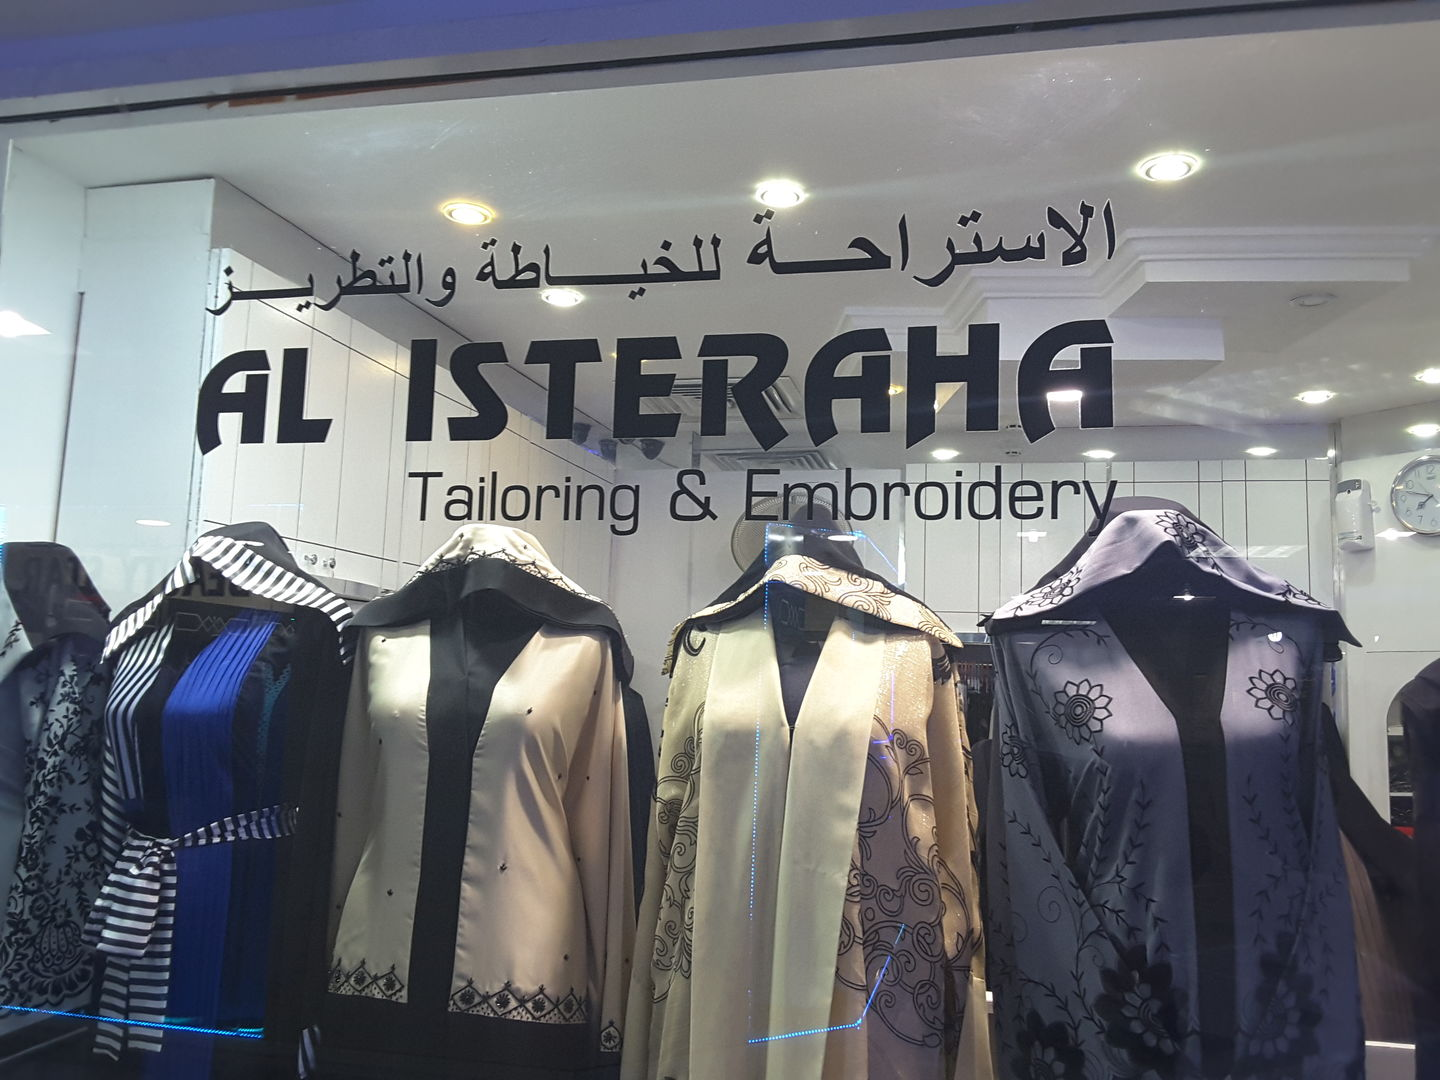 HiDubai-business-al-isteraha-tailoring-embroidery-shopping-apparel-hor-al-anz-east-dubai-2